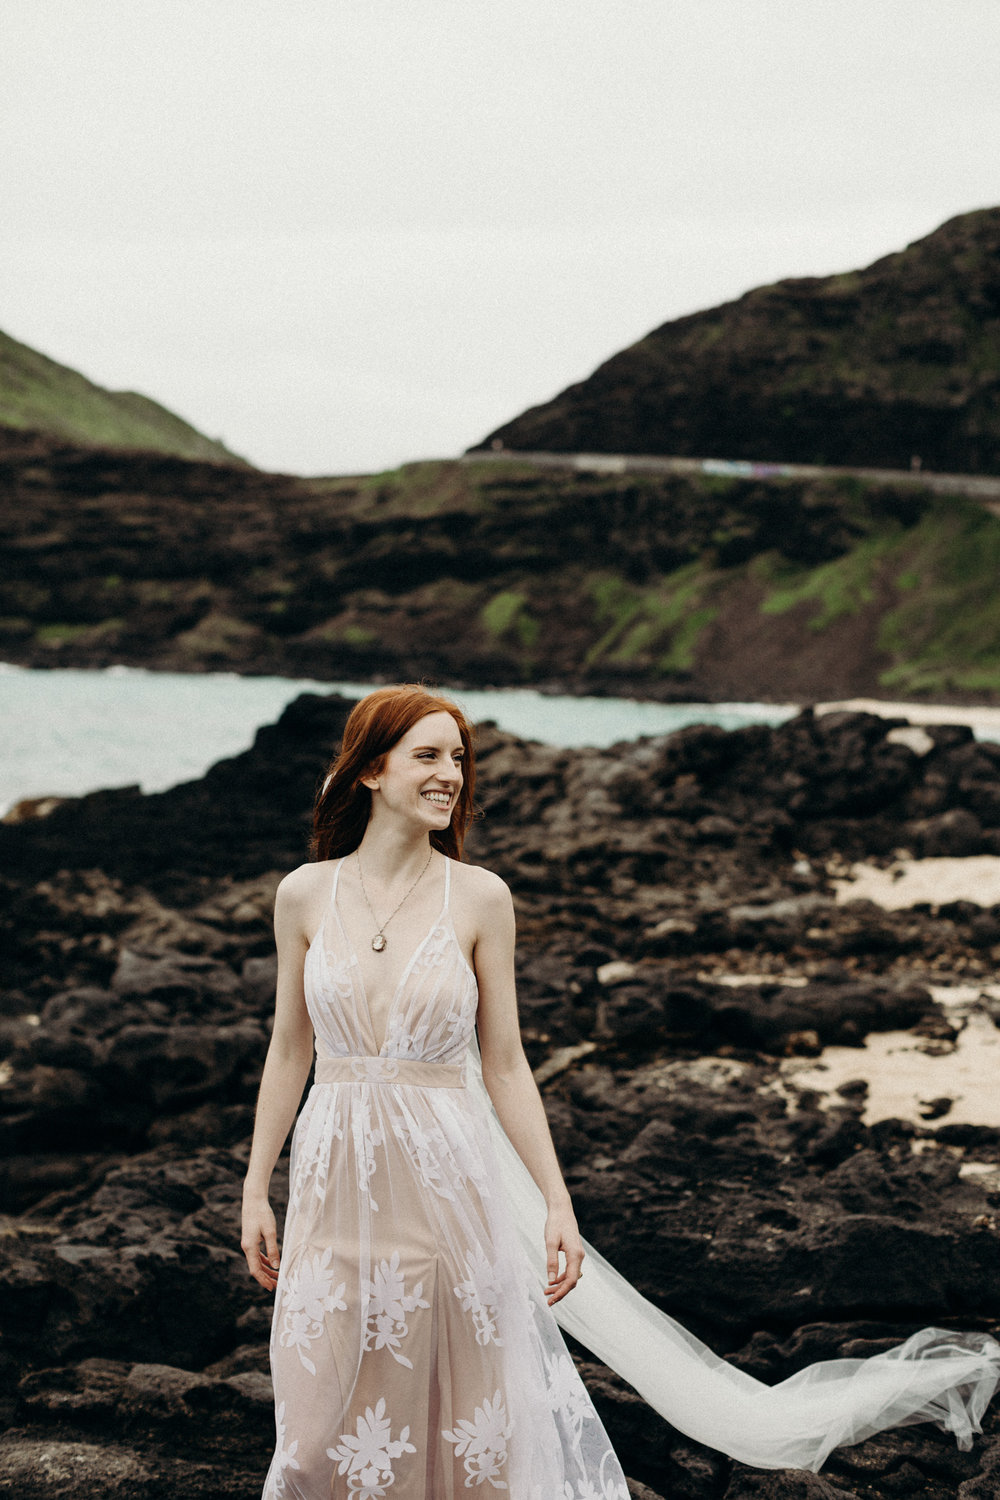 hawaii-wedding-photographer-keani-bakula-30.jpg